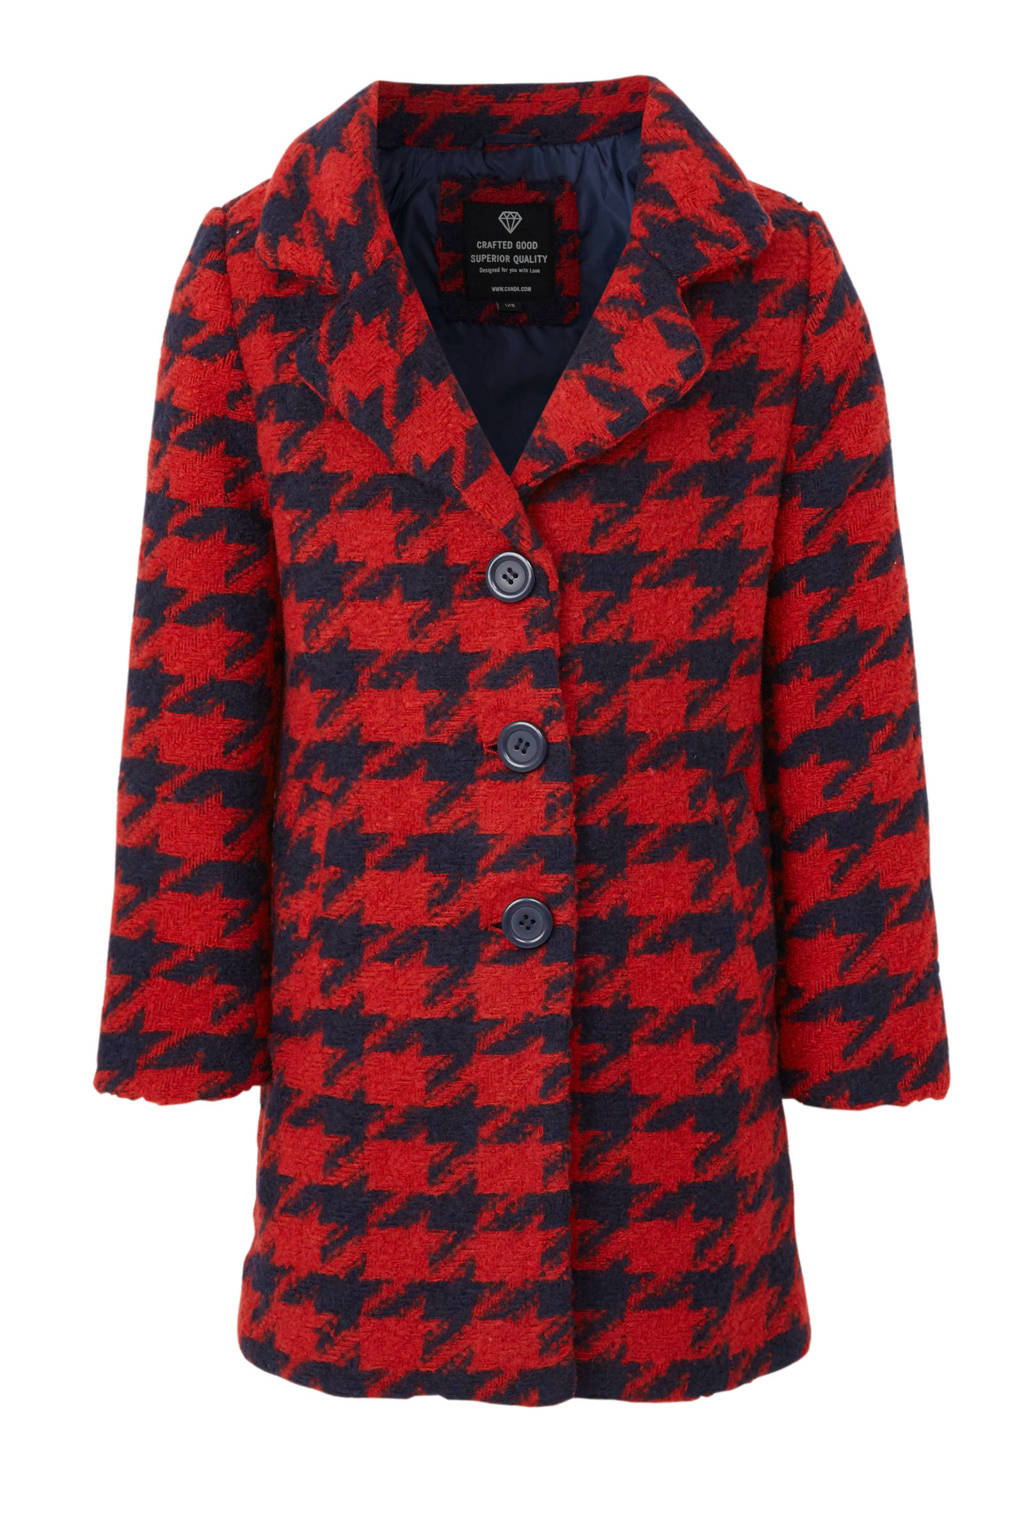 C&A Here & There winterjas met wol en pied-de-poule rood/donkerblauw, Rood/donkerblauw